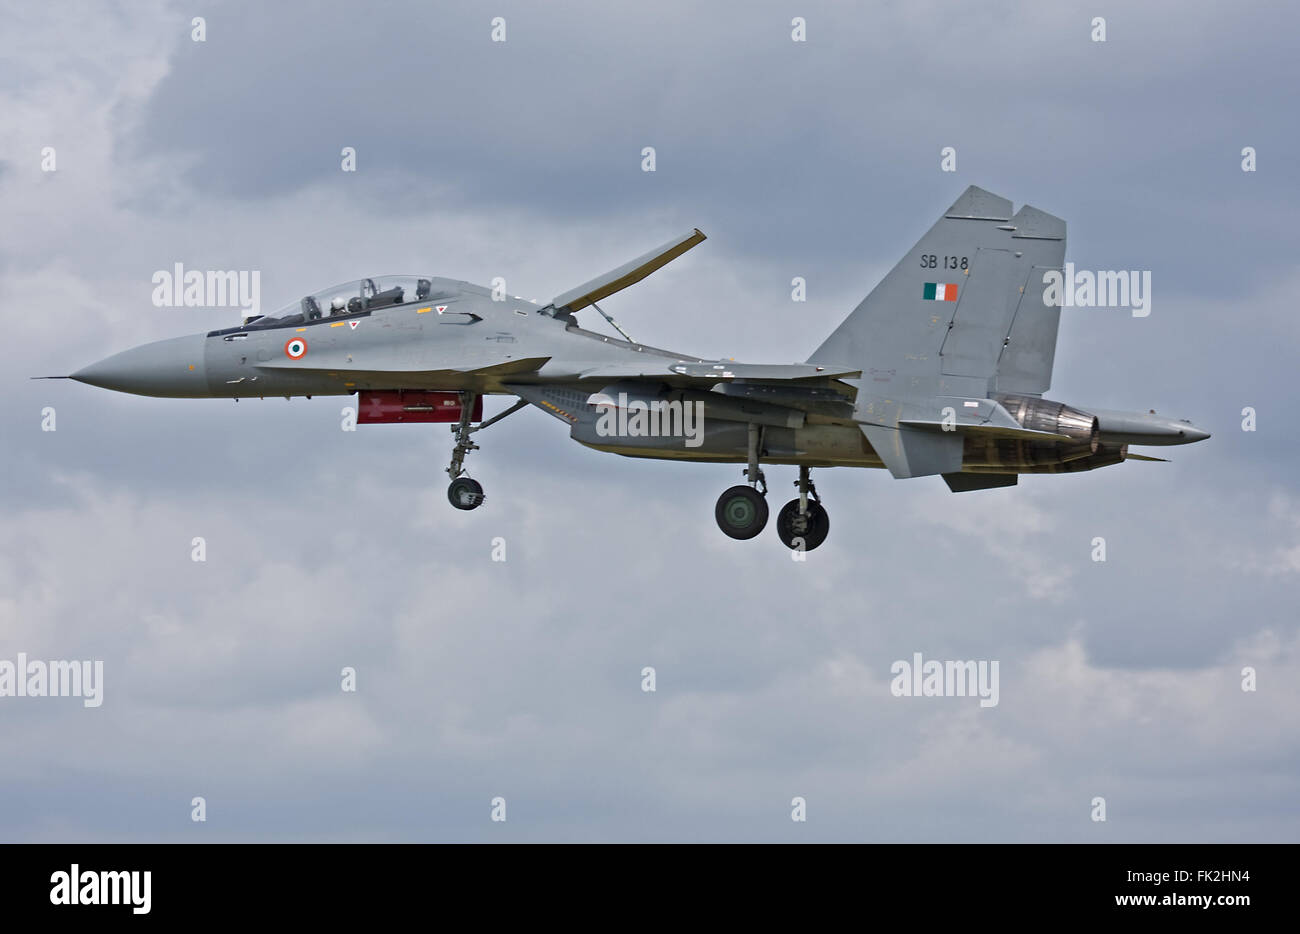 Indian Air Force Sukhoi SU-30MKI 'Flanker' - Stock Image